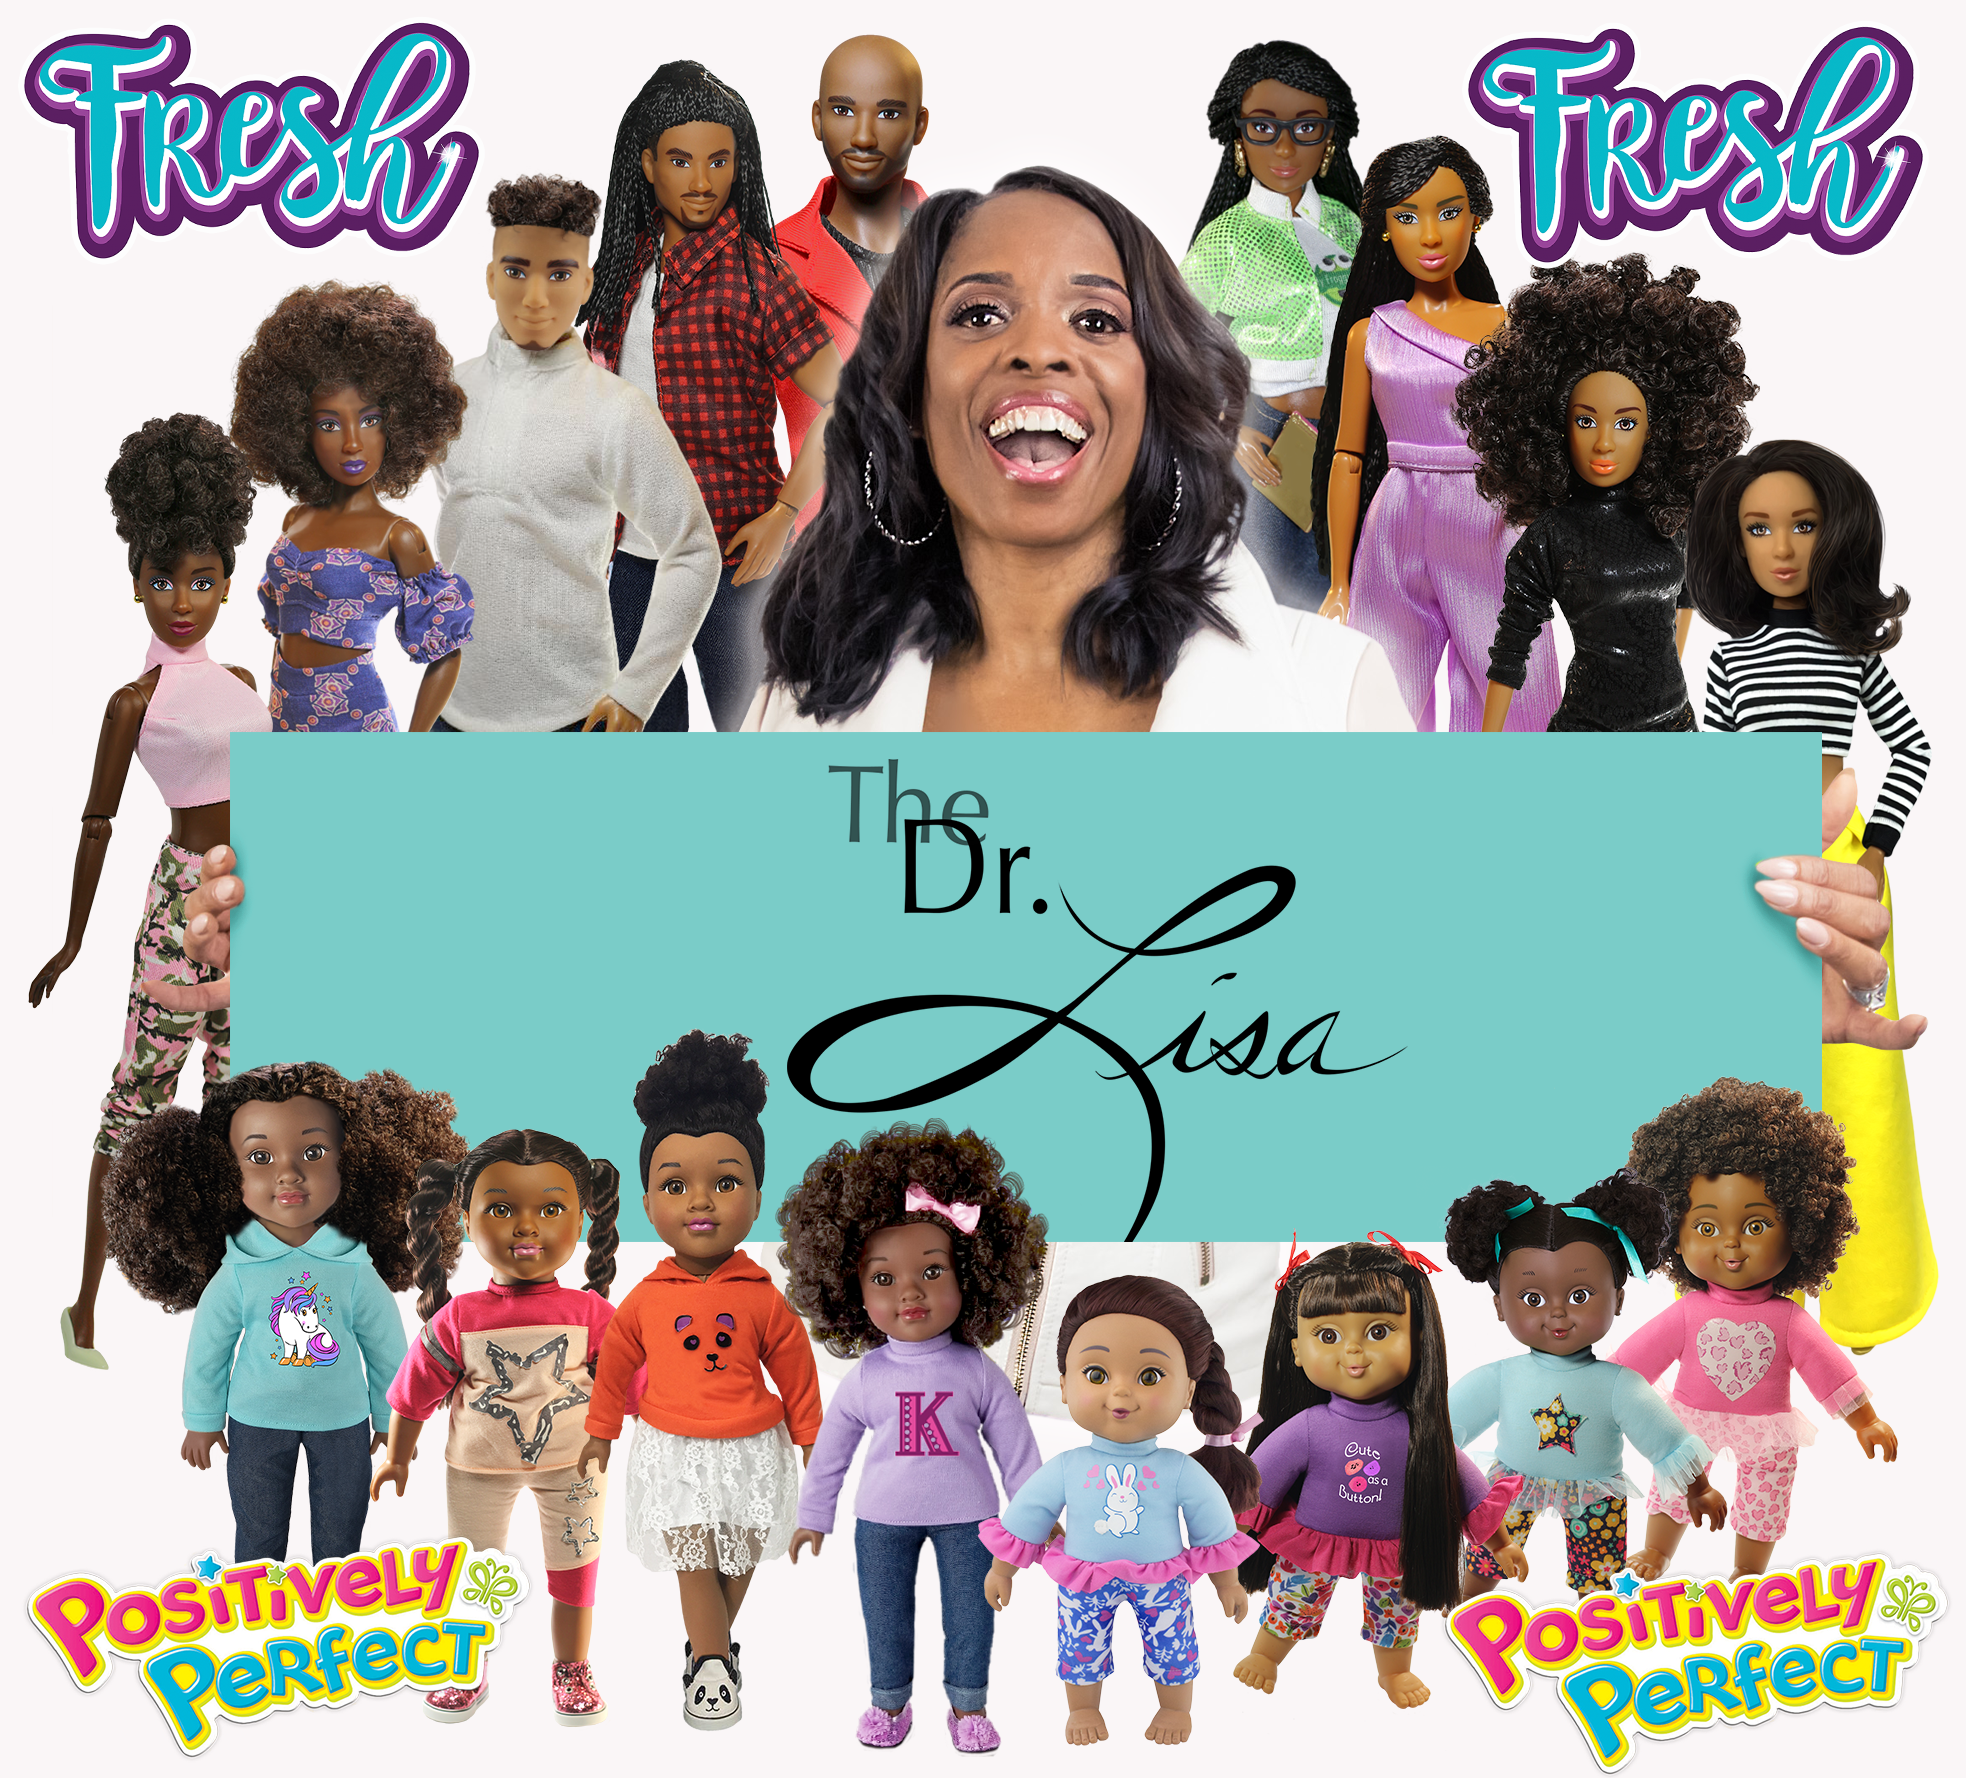 Interview with Dr Lisa and How She Strives For Inclusivity In The Toy Aisle